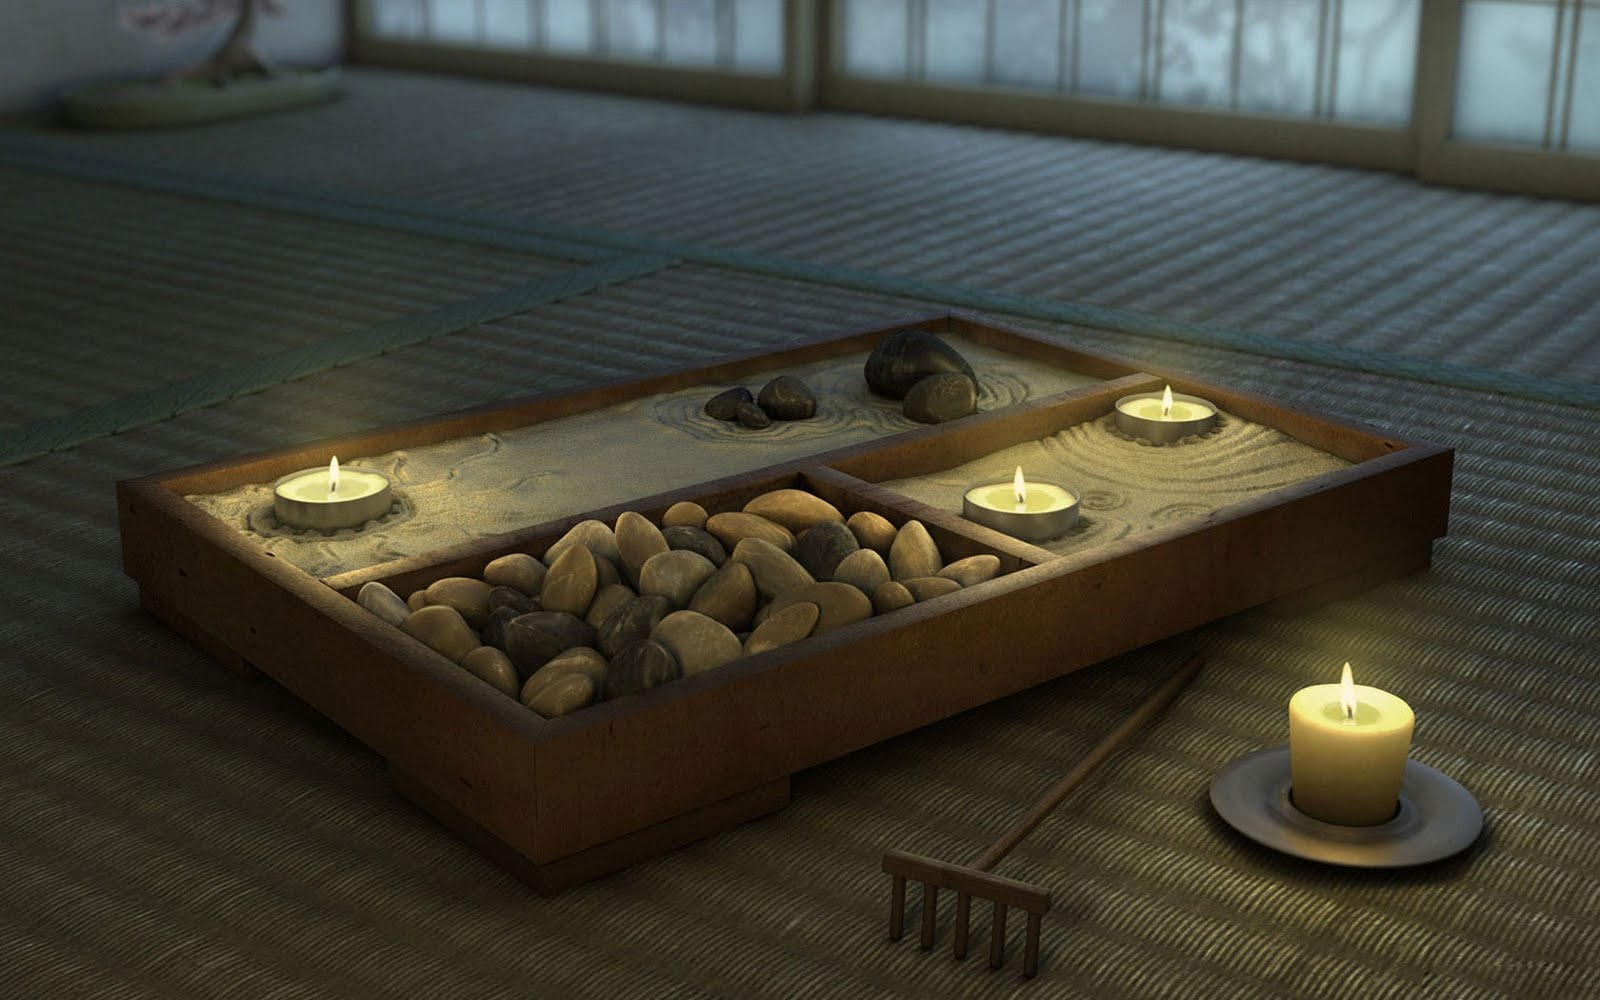 Top 5 Best Desktop Zen Gardens List • My Zen Decor